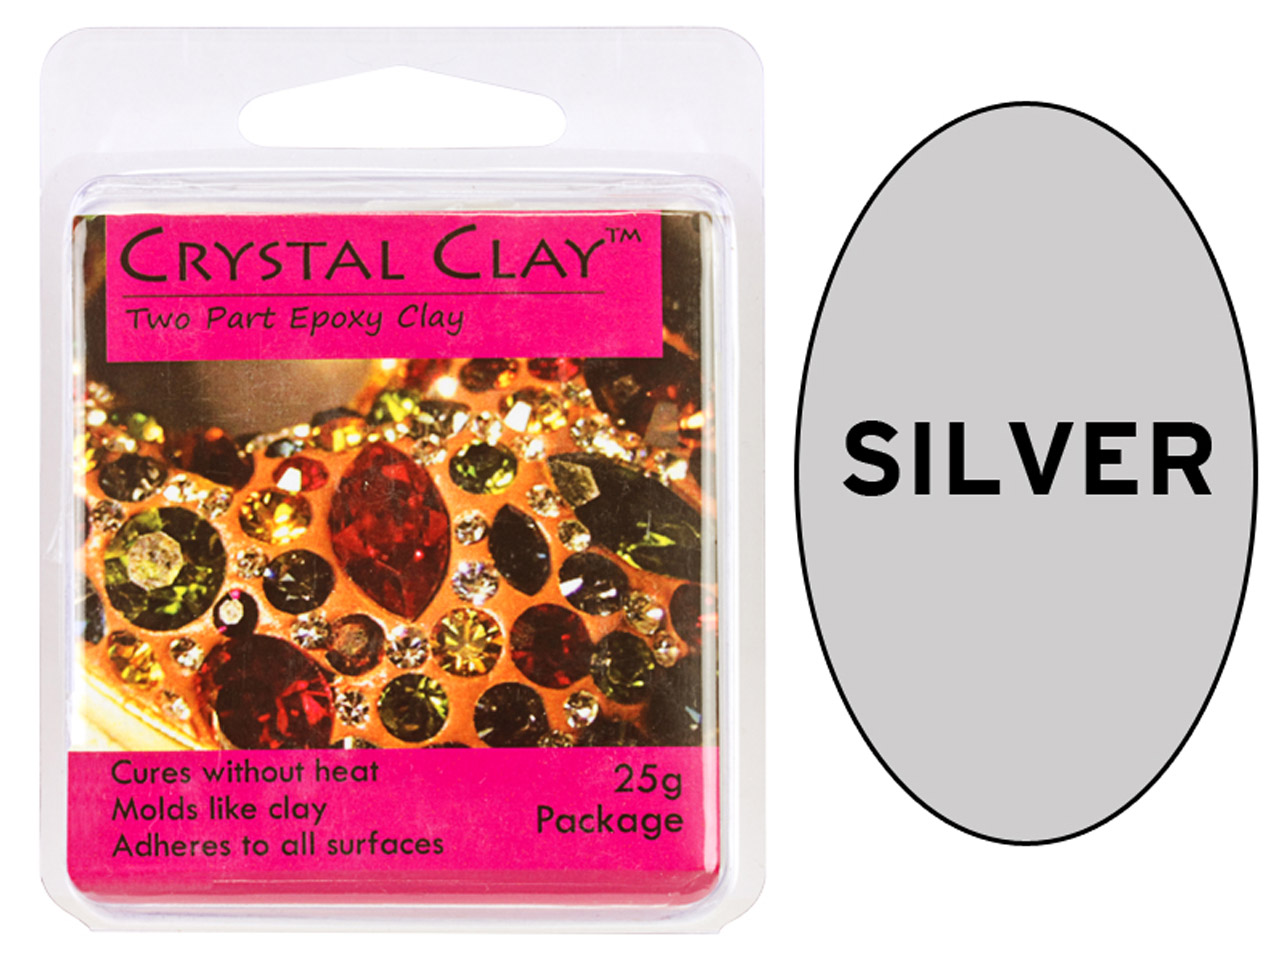 Crystal Clay Silver 25g Two Part   Epoxy Clay